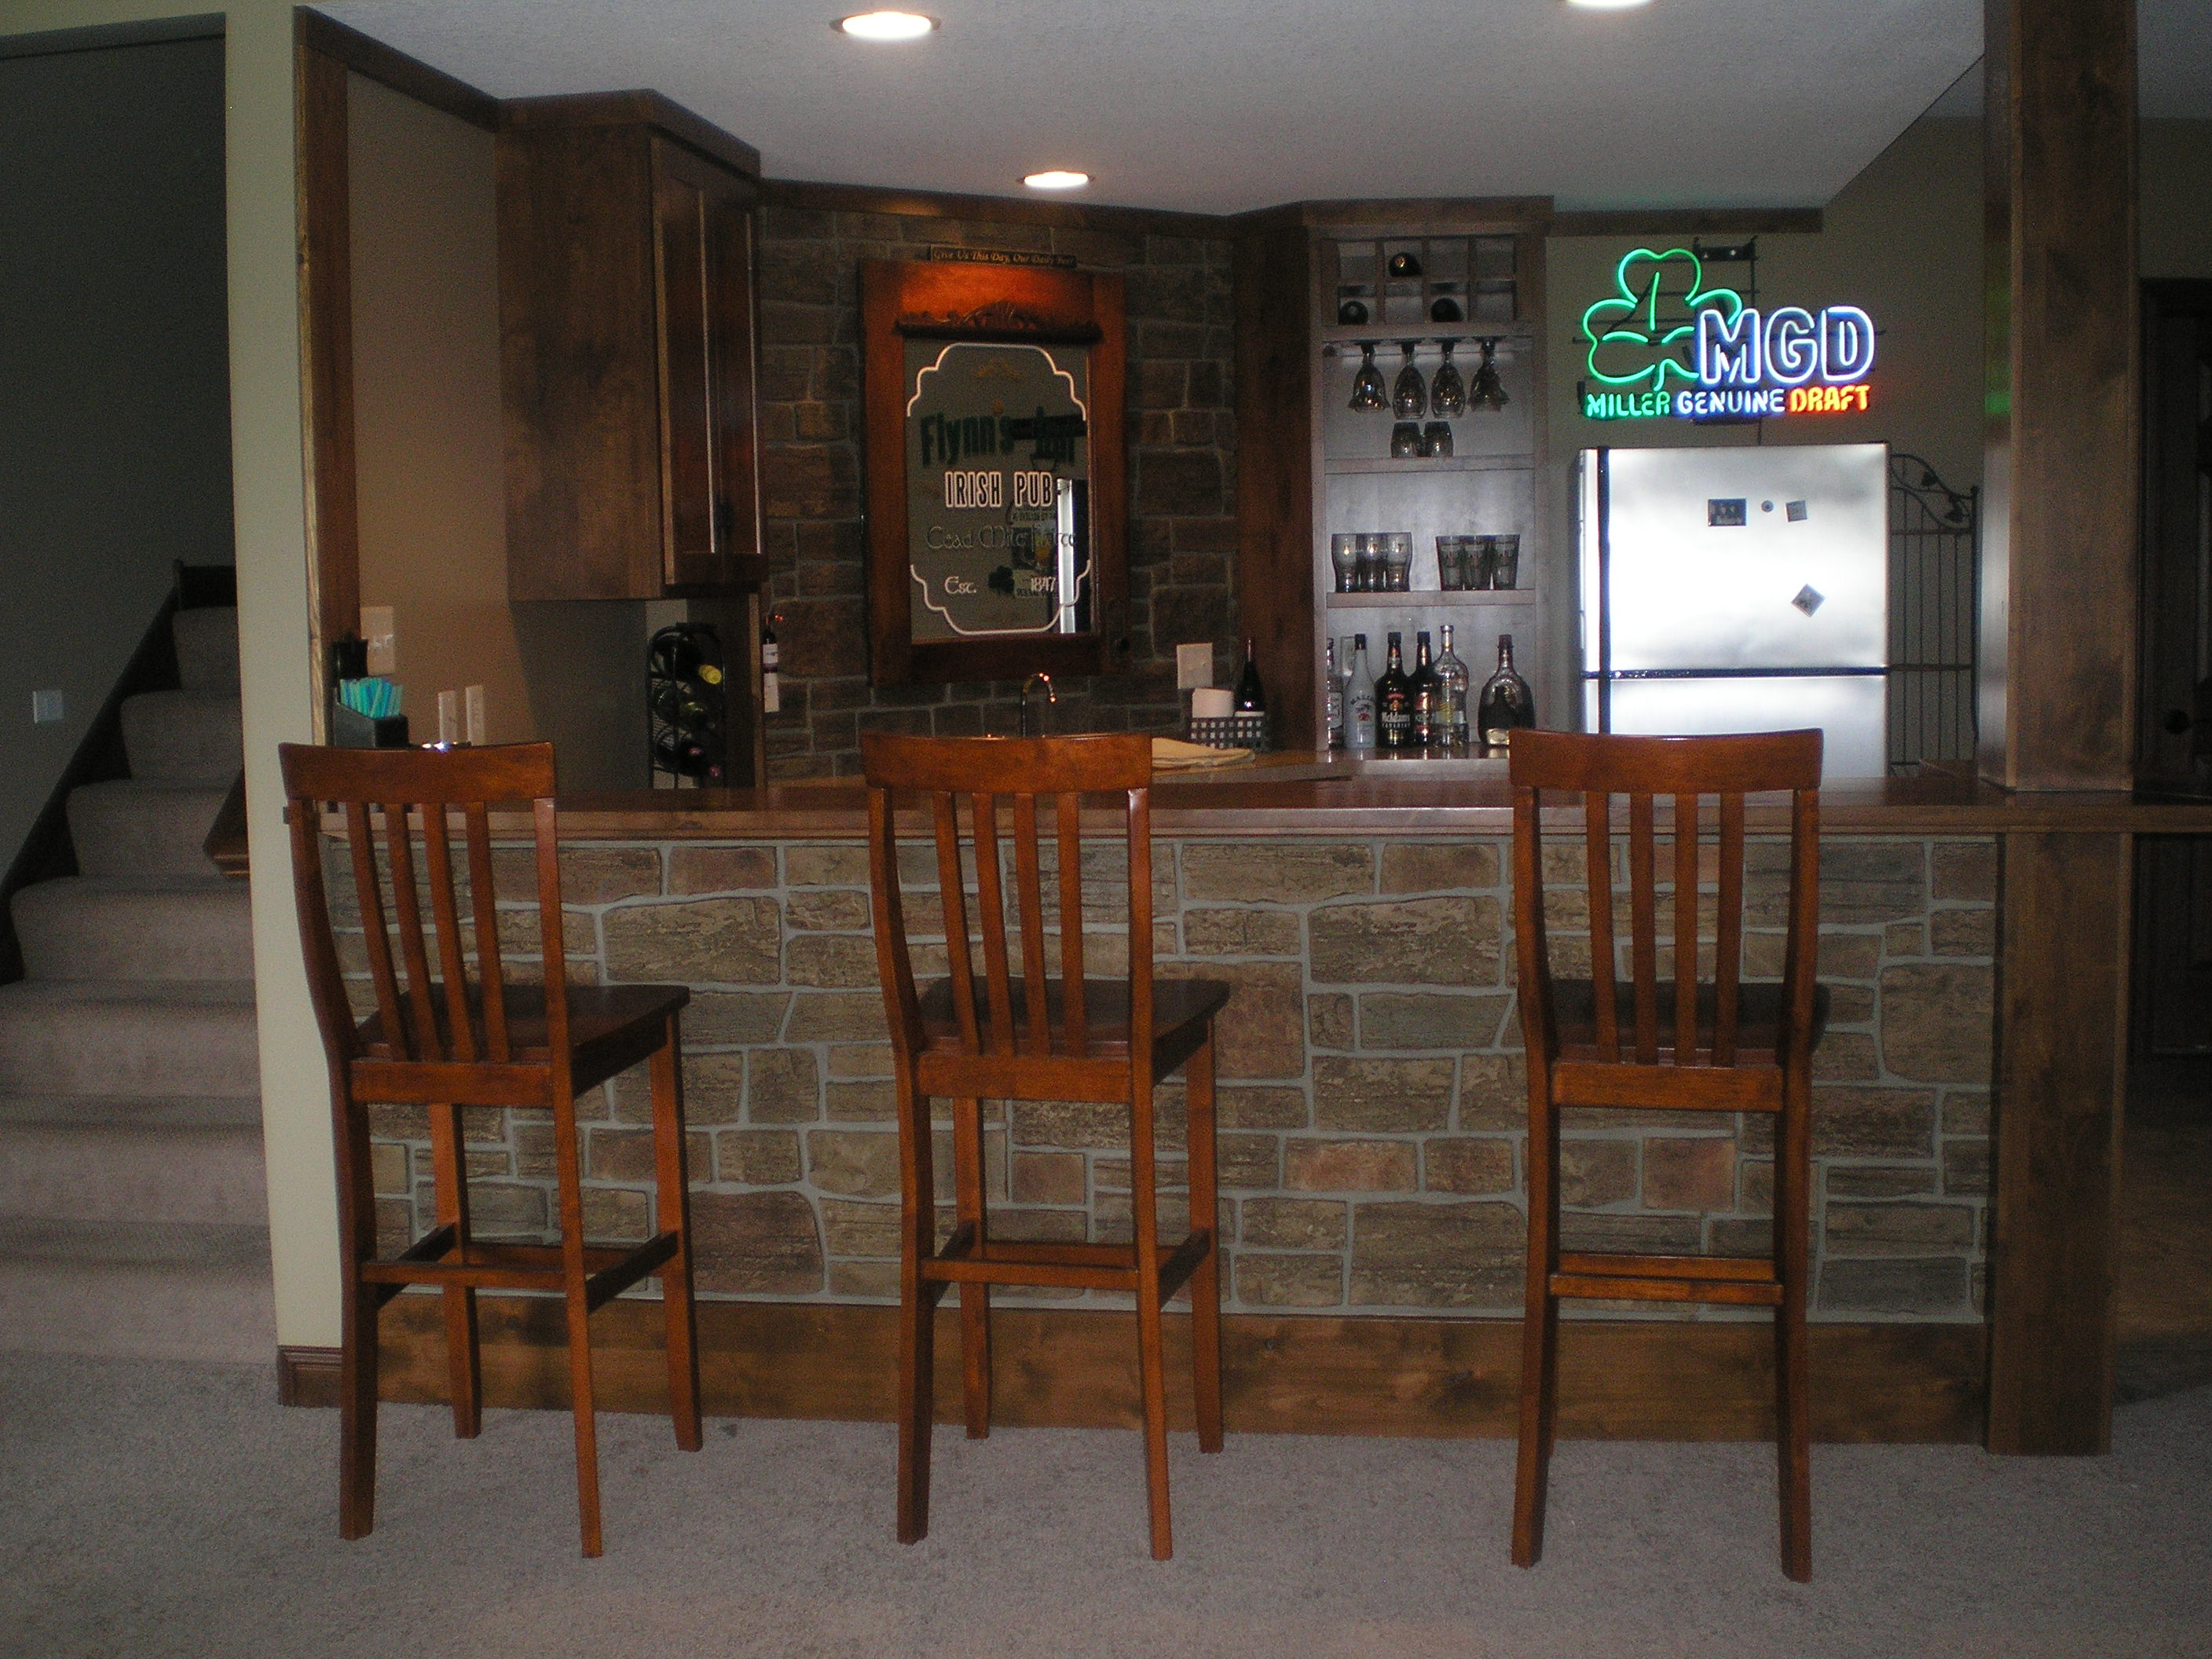 Stone Veneer panels with wooden chair and frige for kitchen ideas